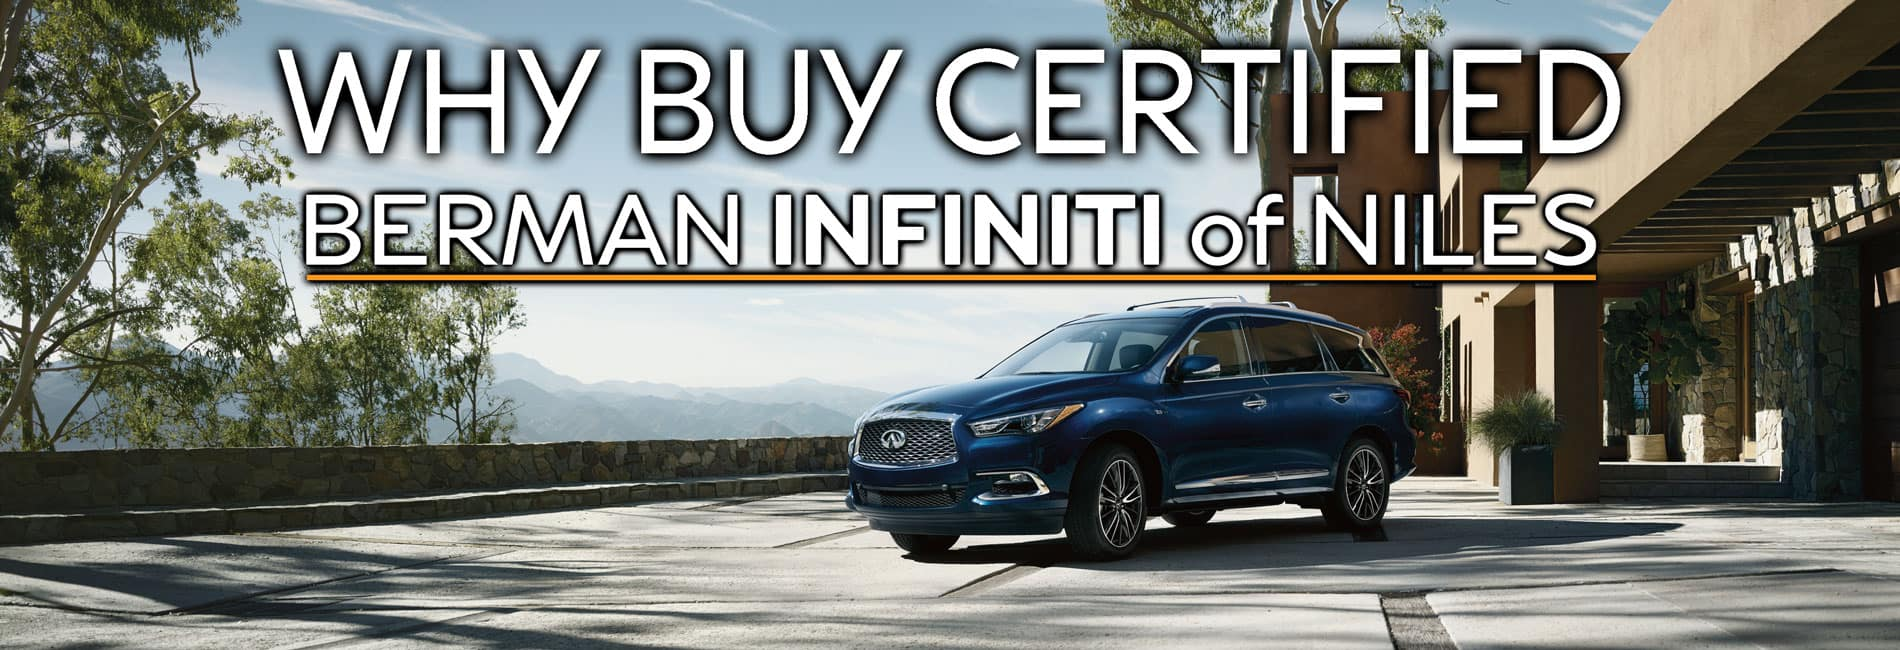 Why Buy Certified at Berman INFINITI of Niles